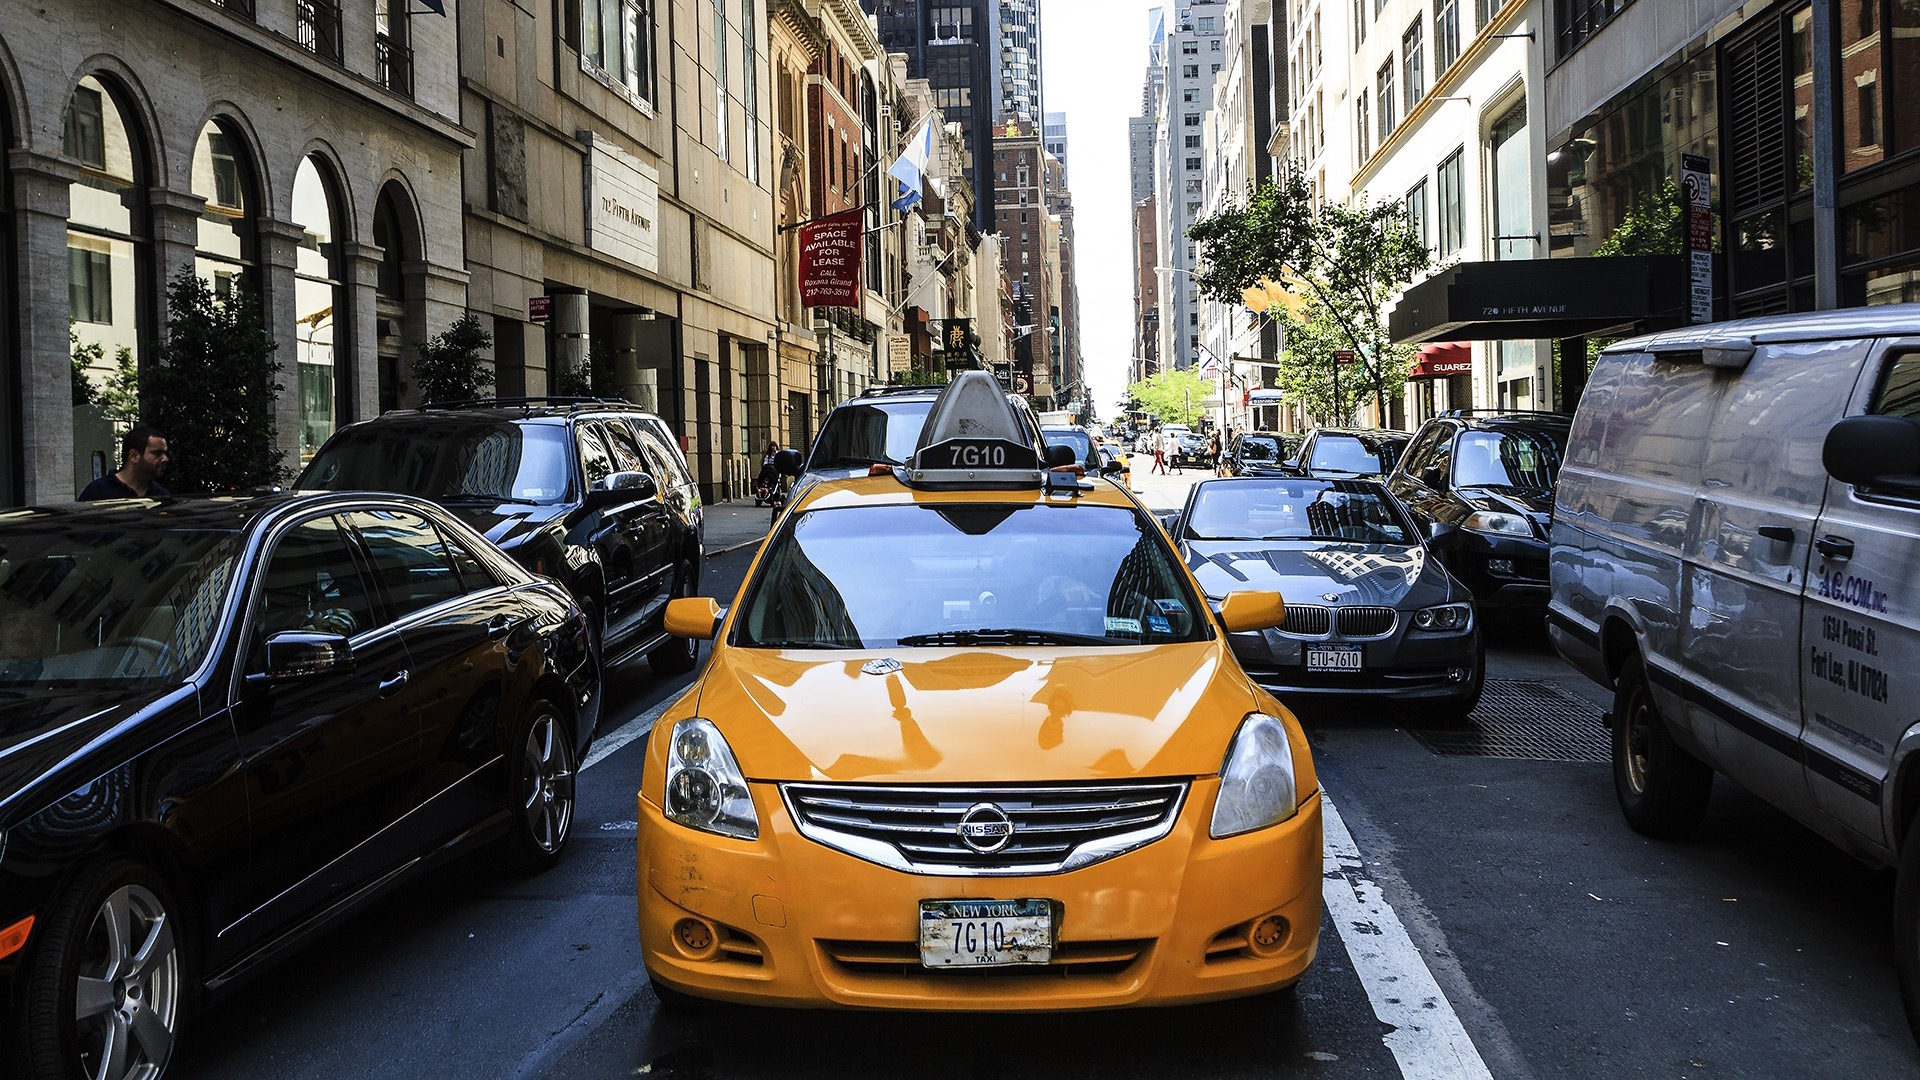 Taxi, New york, Stadt, Apple, América - Wallpaper HD - Prof.-falken.com